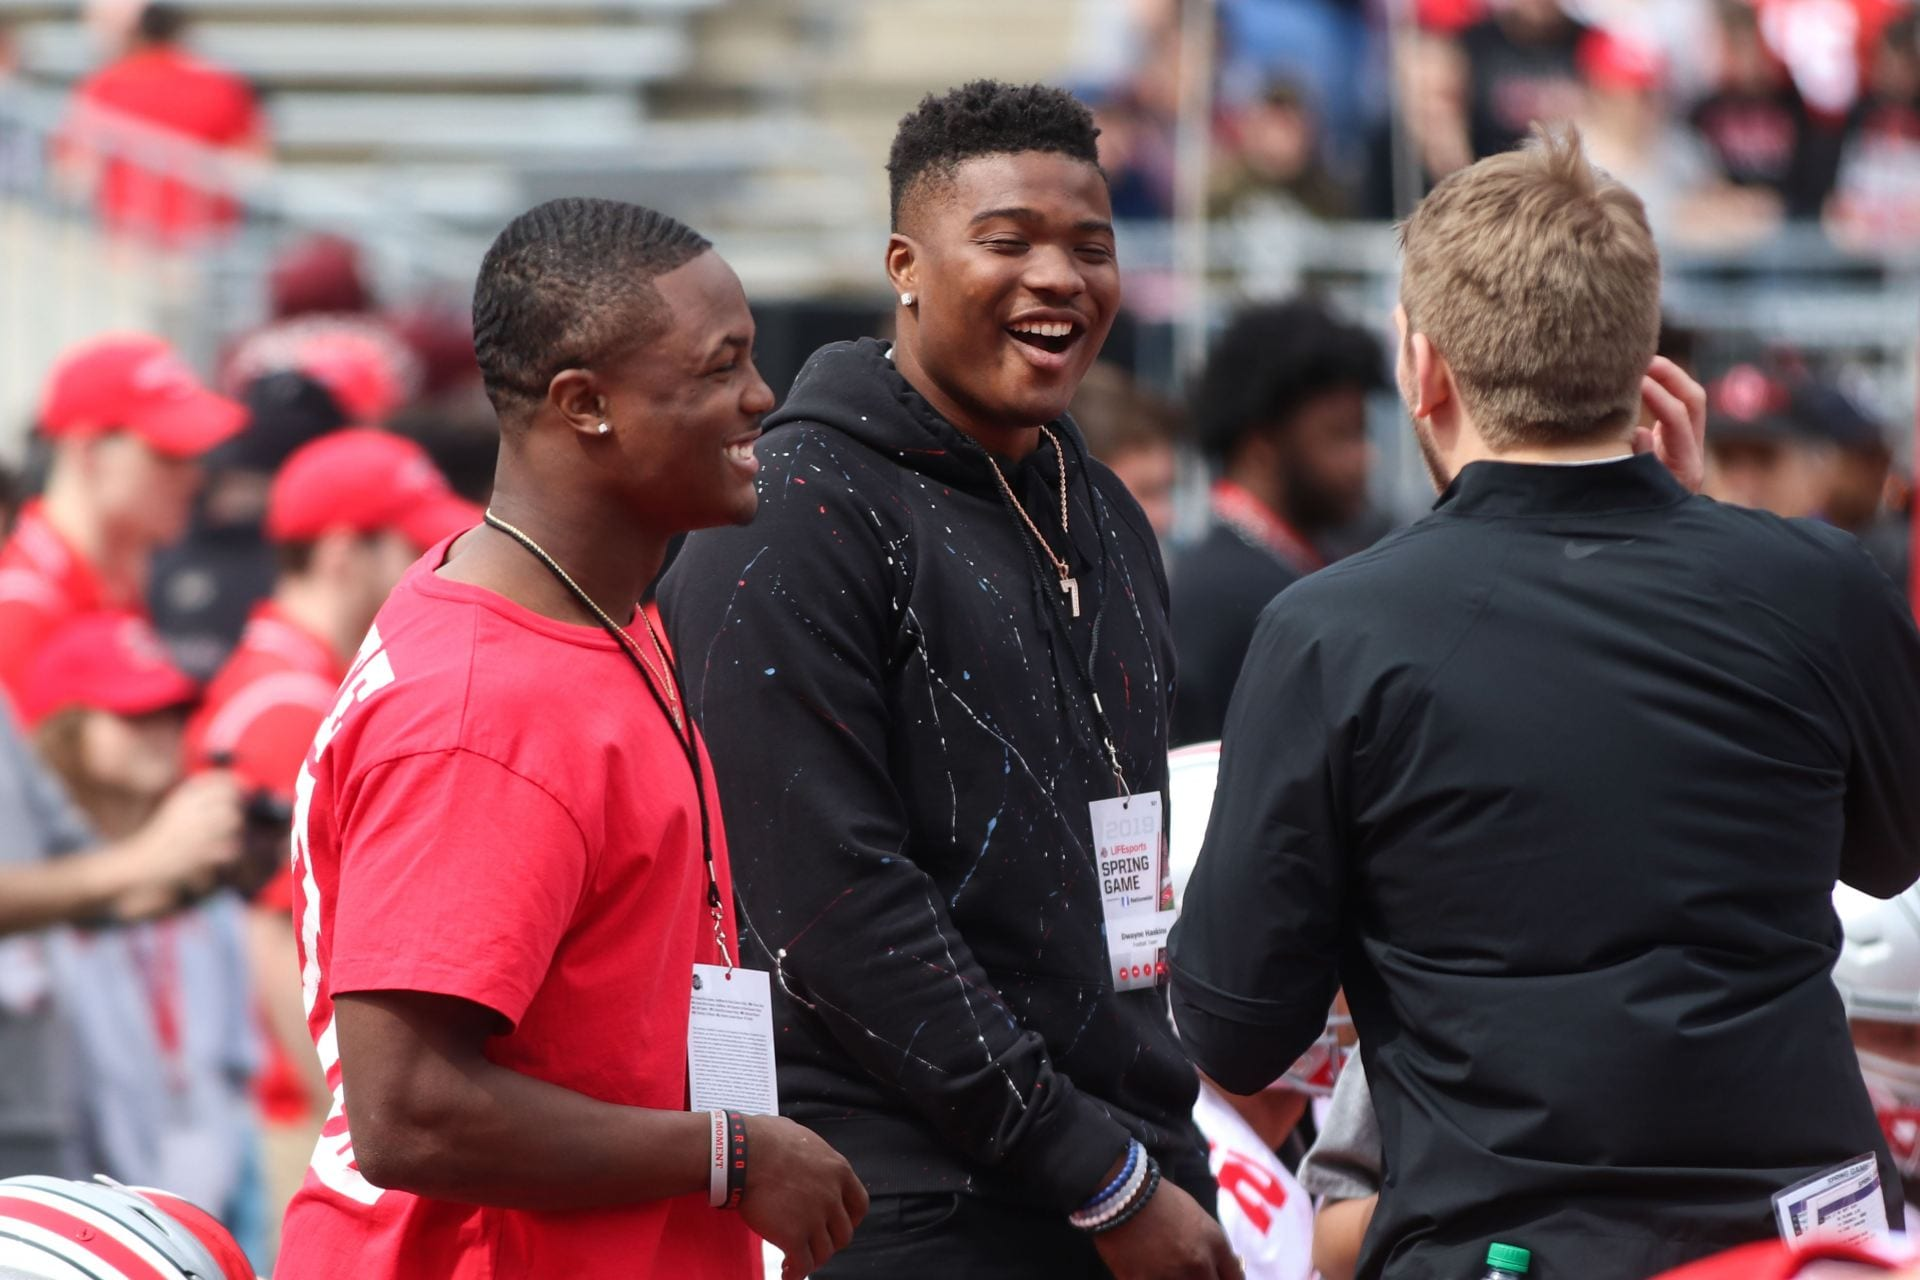 Dwayne Haskins and Terry McLaurin laugh on the sidelines prior to the start of the 2019 Spring Game on April 13. Gray beat Scarlet 35-17. Credit: Casey Cascaldo | Former Managing Editor for Multimedia